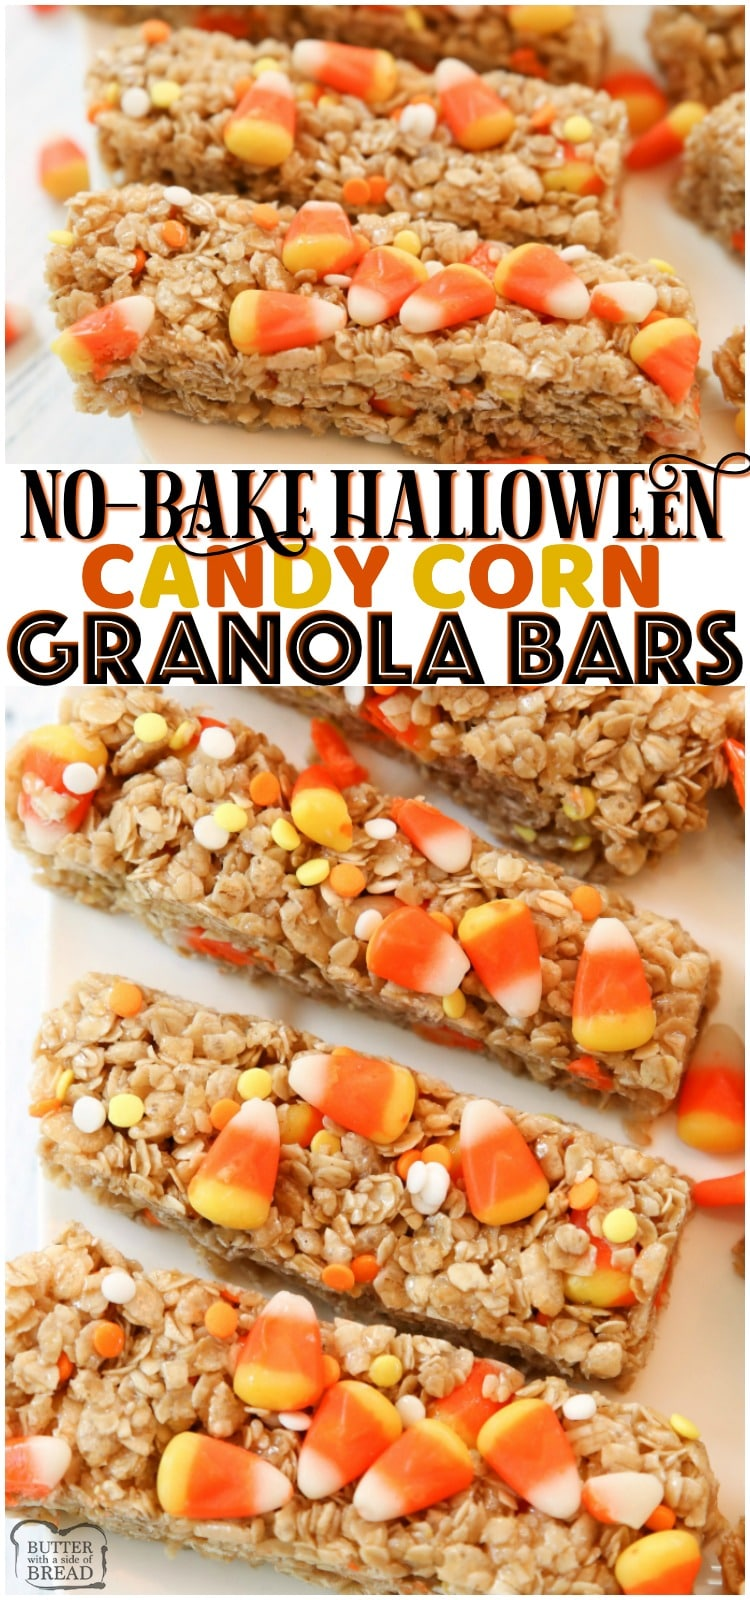 Quick & Easy Candy Corn Granola Bar recipemade in minutes. Perfect Halloween snack! Simple ingredients combined to make a tasty homemade granola bars.